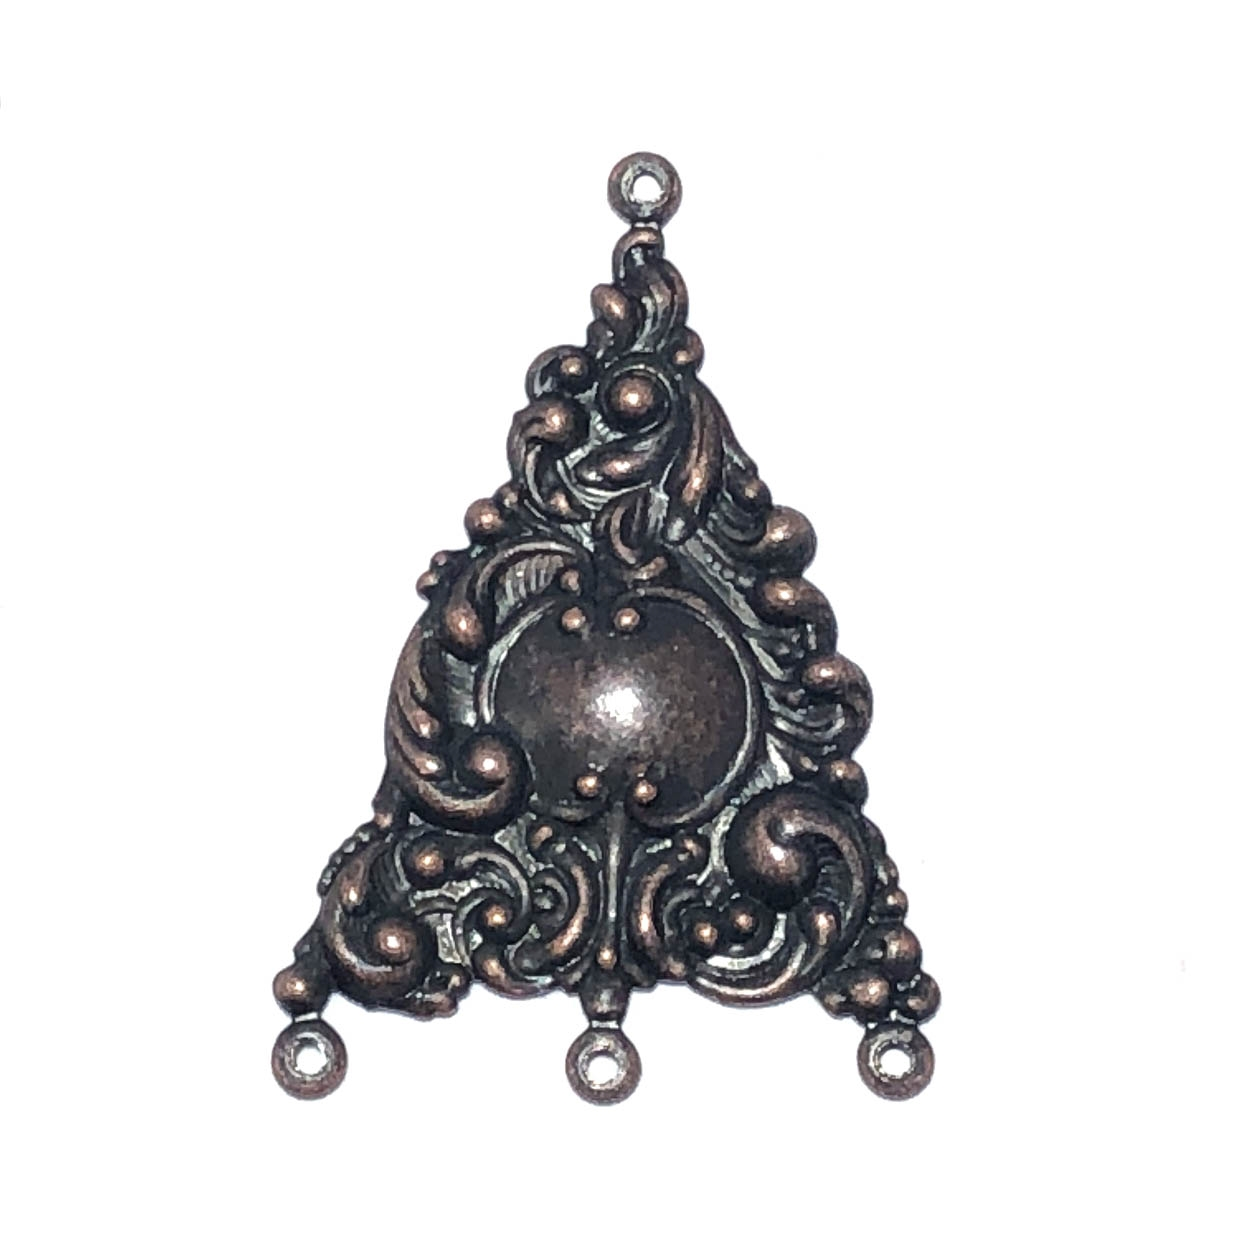 victorian gypsy ear drops, rusted iron brass, brass stamping, ear drops, pendant, earrings, floral, victorian, gypsy, us made, nickel free, 31x25mm, jewelry supplies, vintage supplies, jewelry findings, leafy motif, jewelry making, 09596